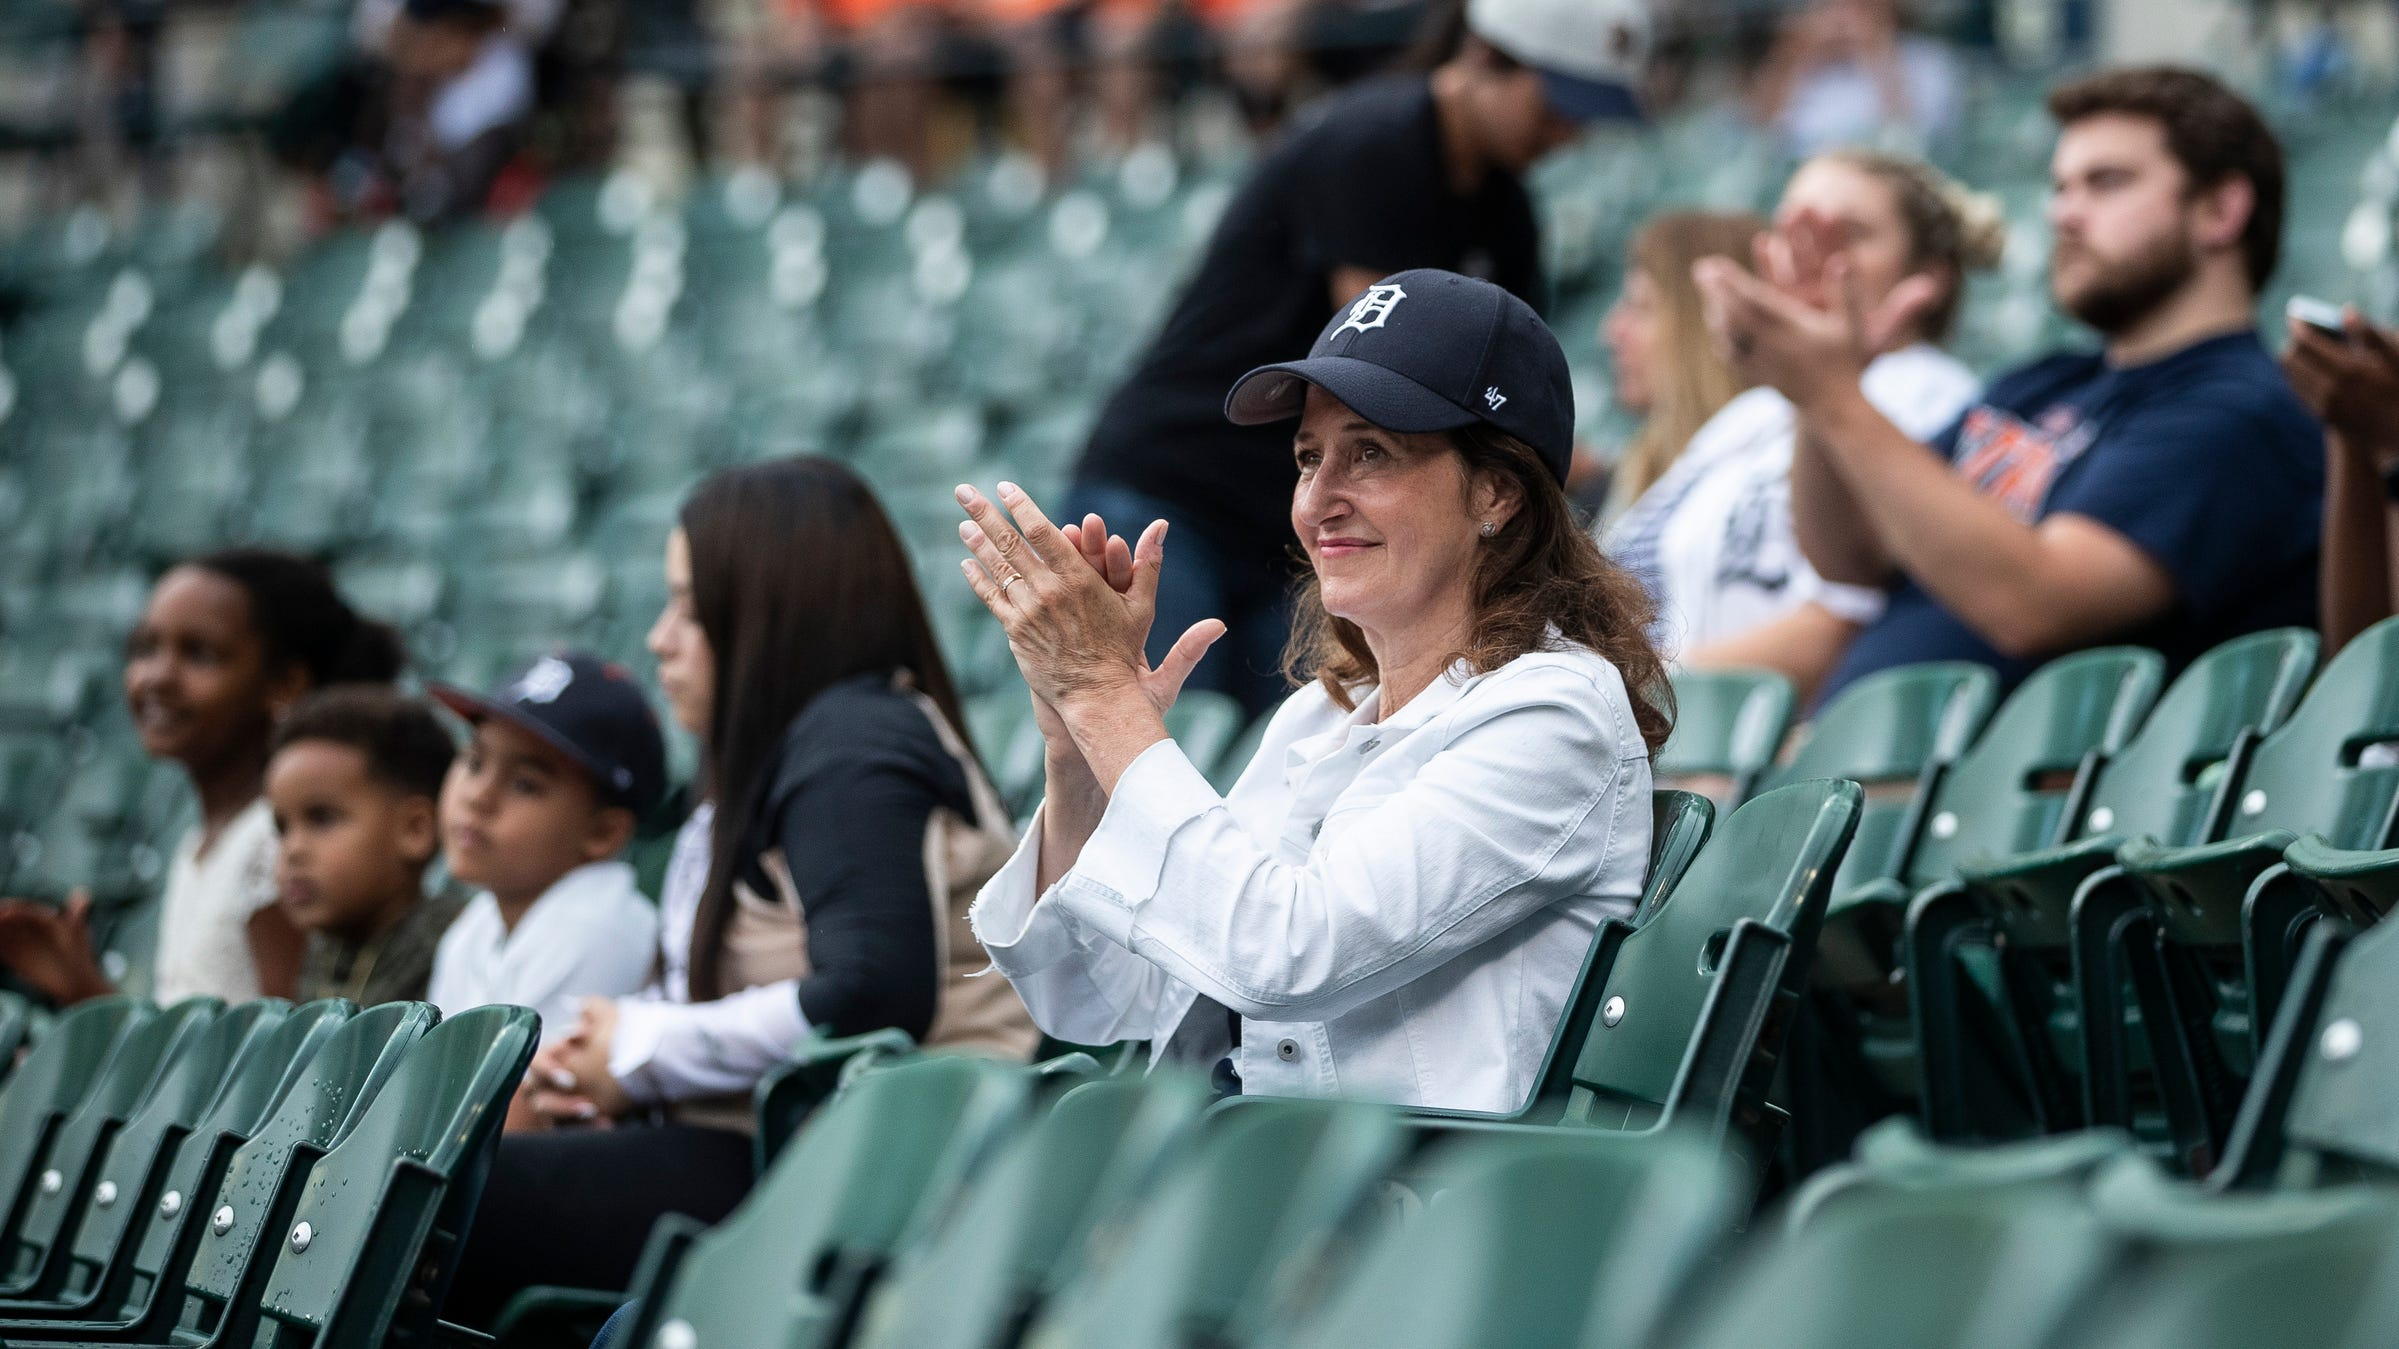 Baseball fans cheer as starting lineup from both teams are announced before Tigers game against Seattle Mariners at Comerica Park in Detroit, Tuesday, June 8, 2021.